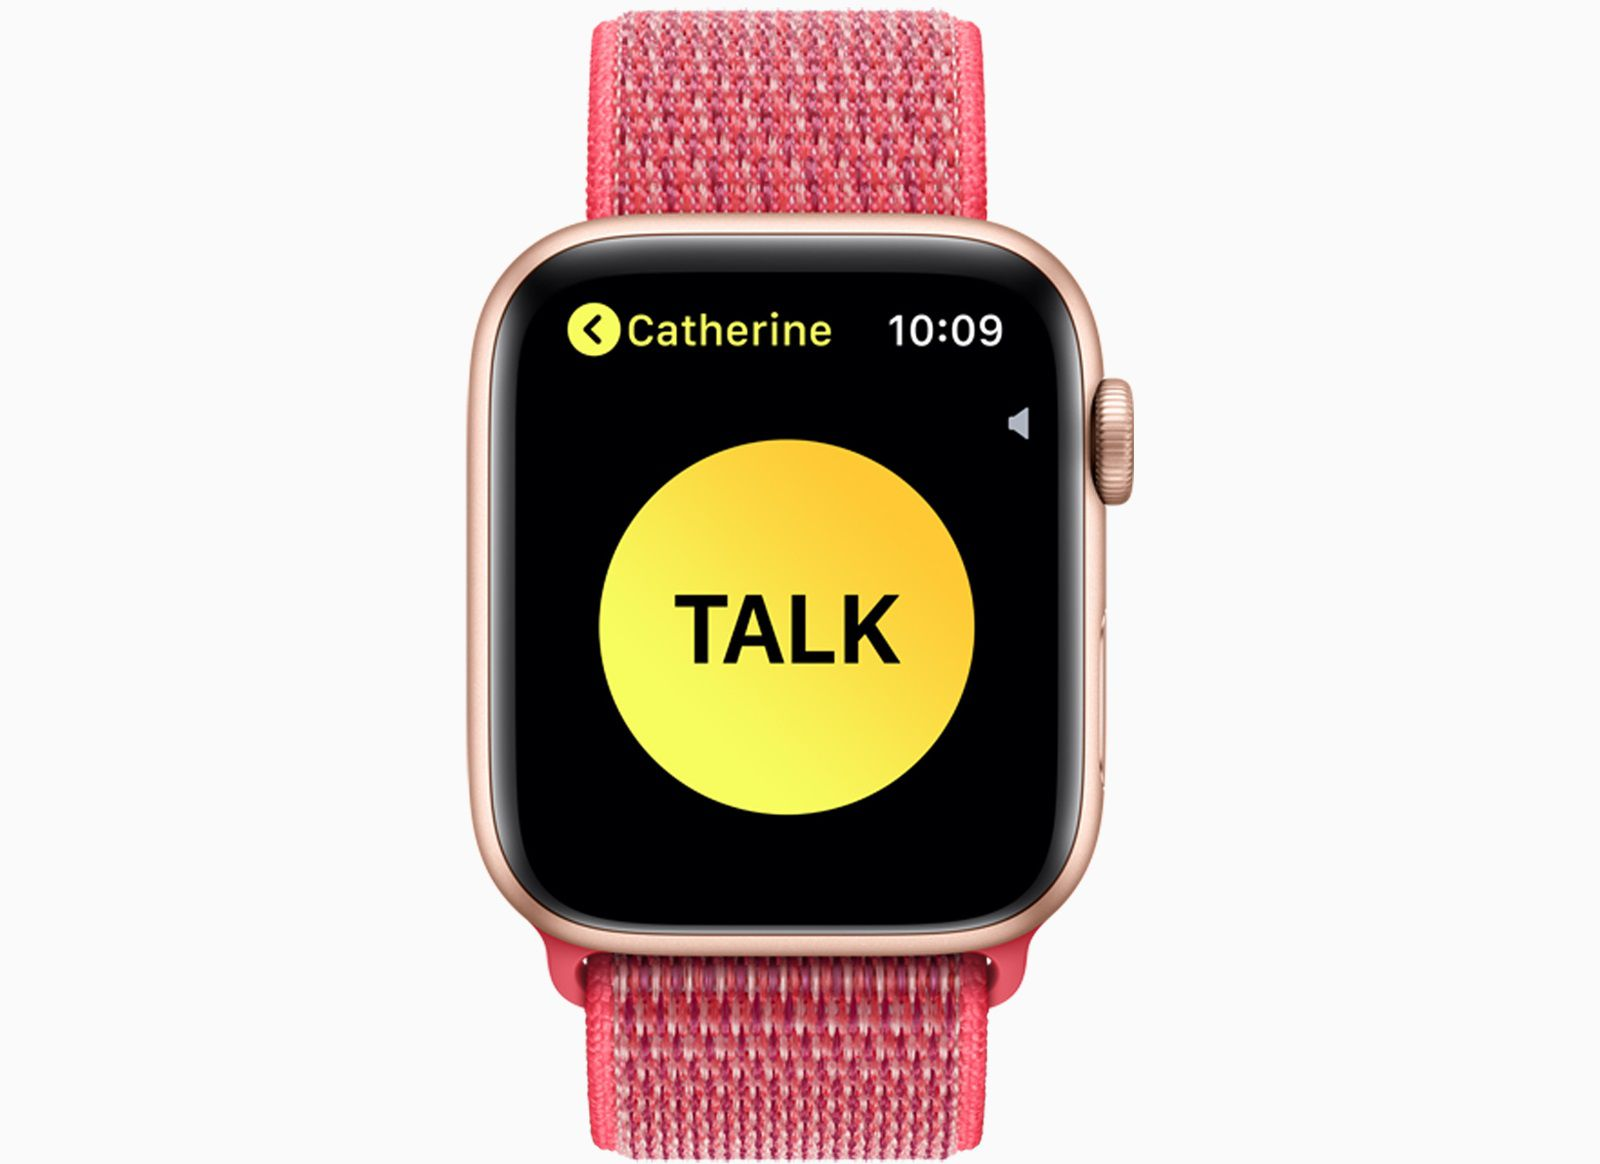 An Apple Watch with the walkie-talkie app on the screen